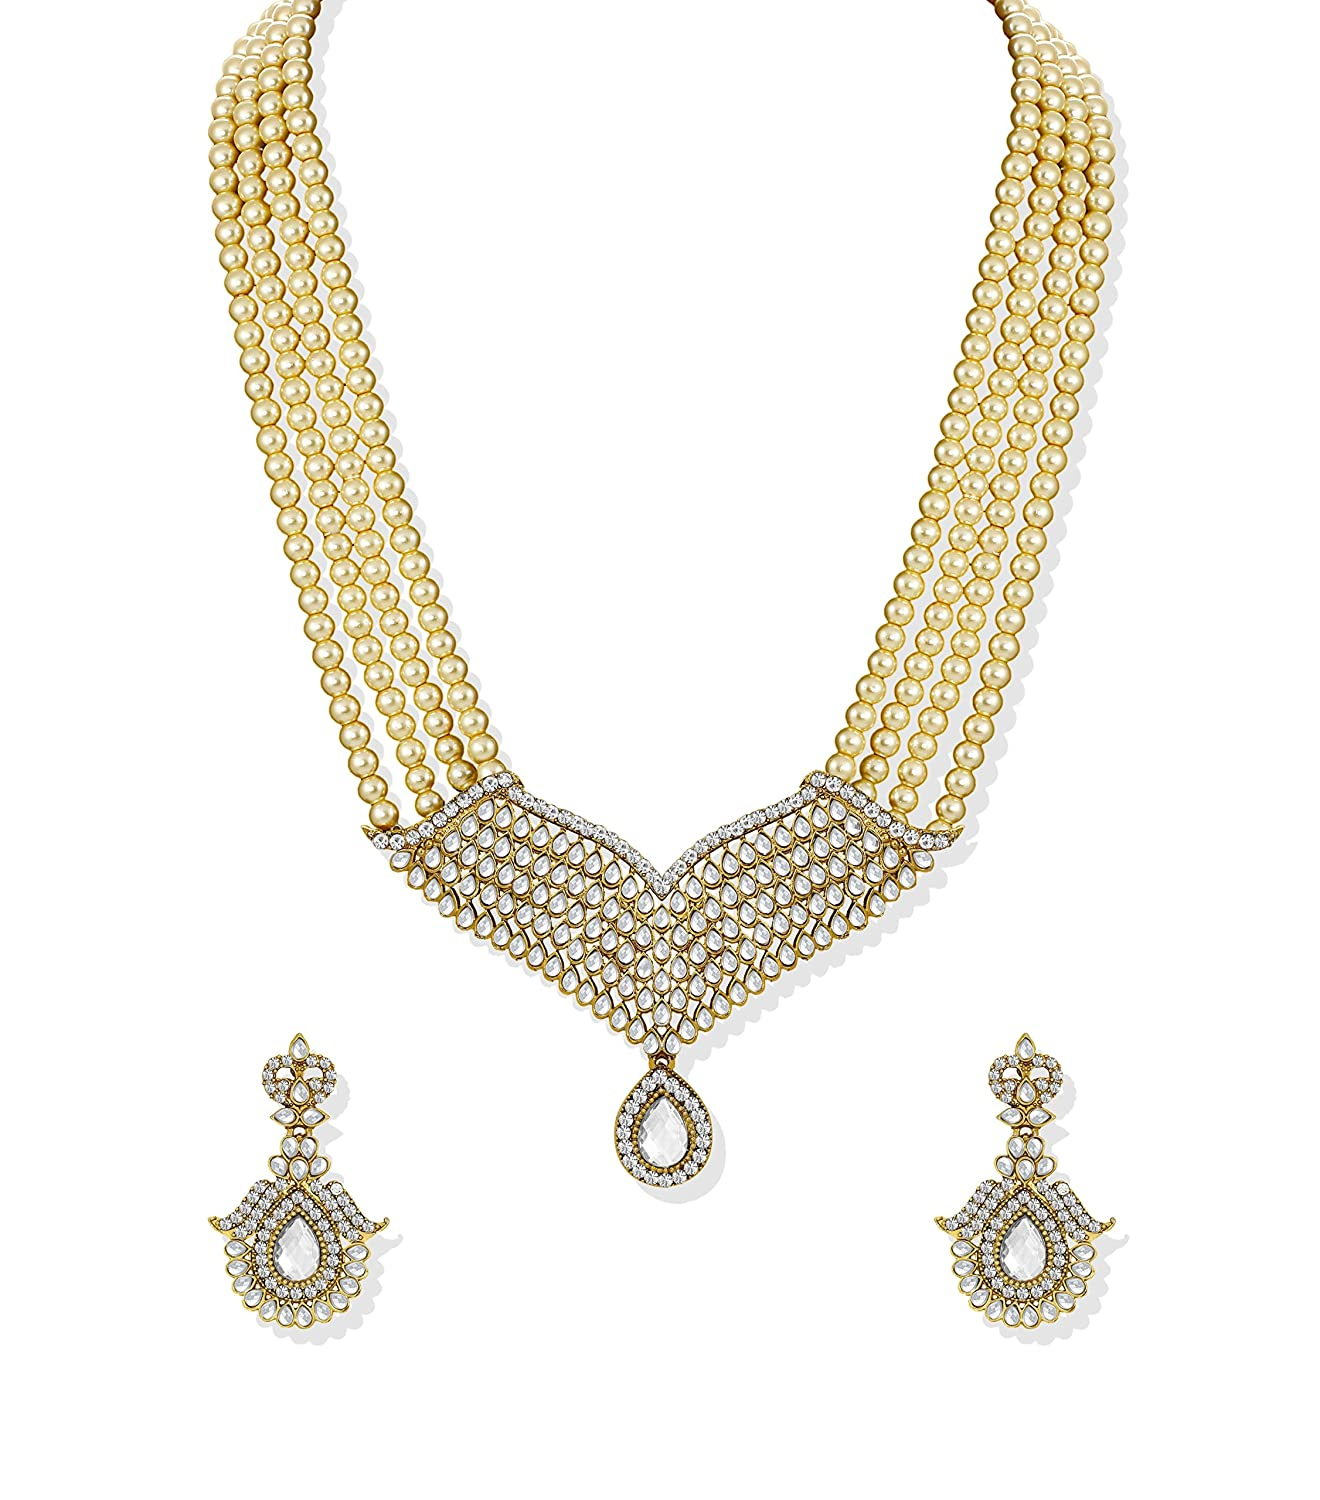 jewelry on pearl lls white for necklace shop southern the medium girls pearls in jewellery light neck